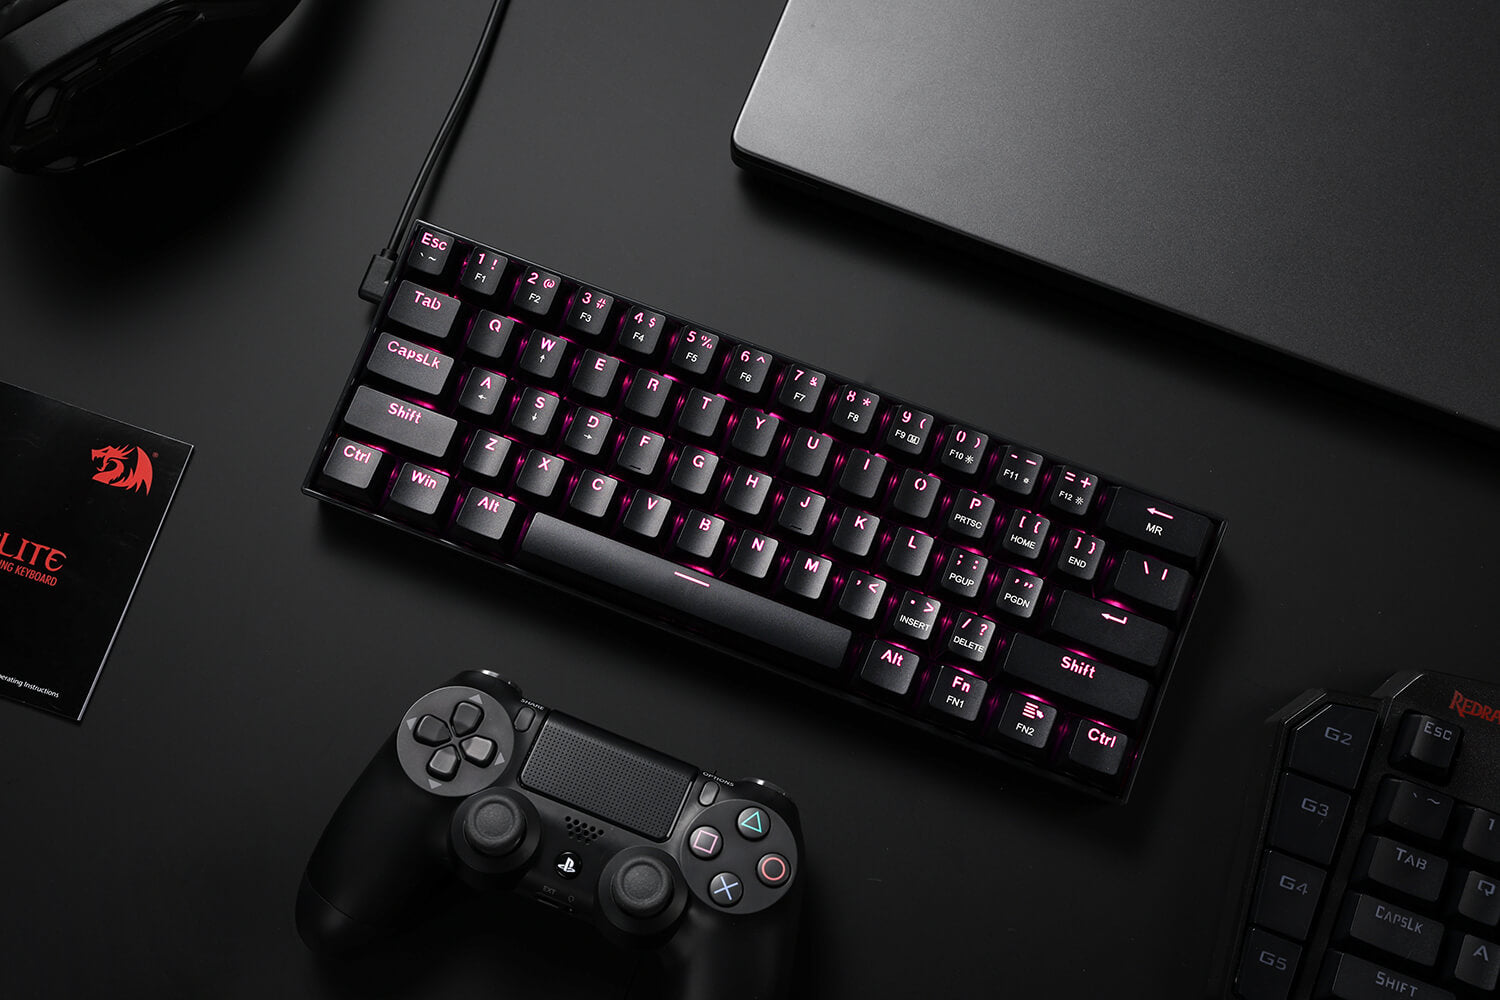 cheap 60% mechanical keyboard pink led backlit